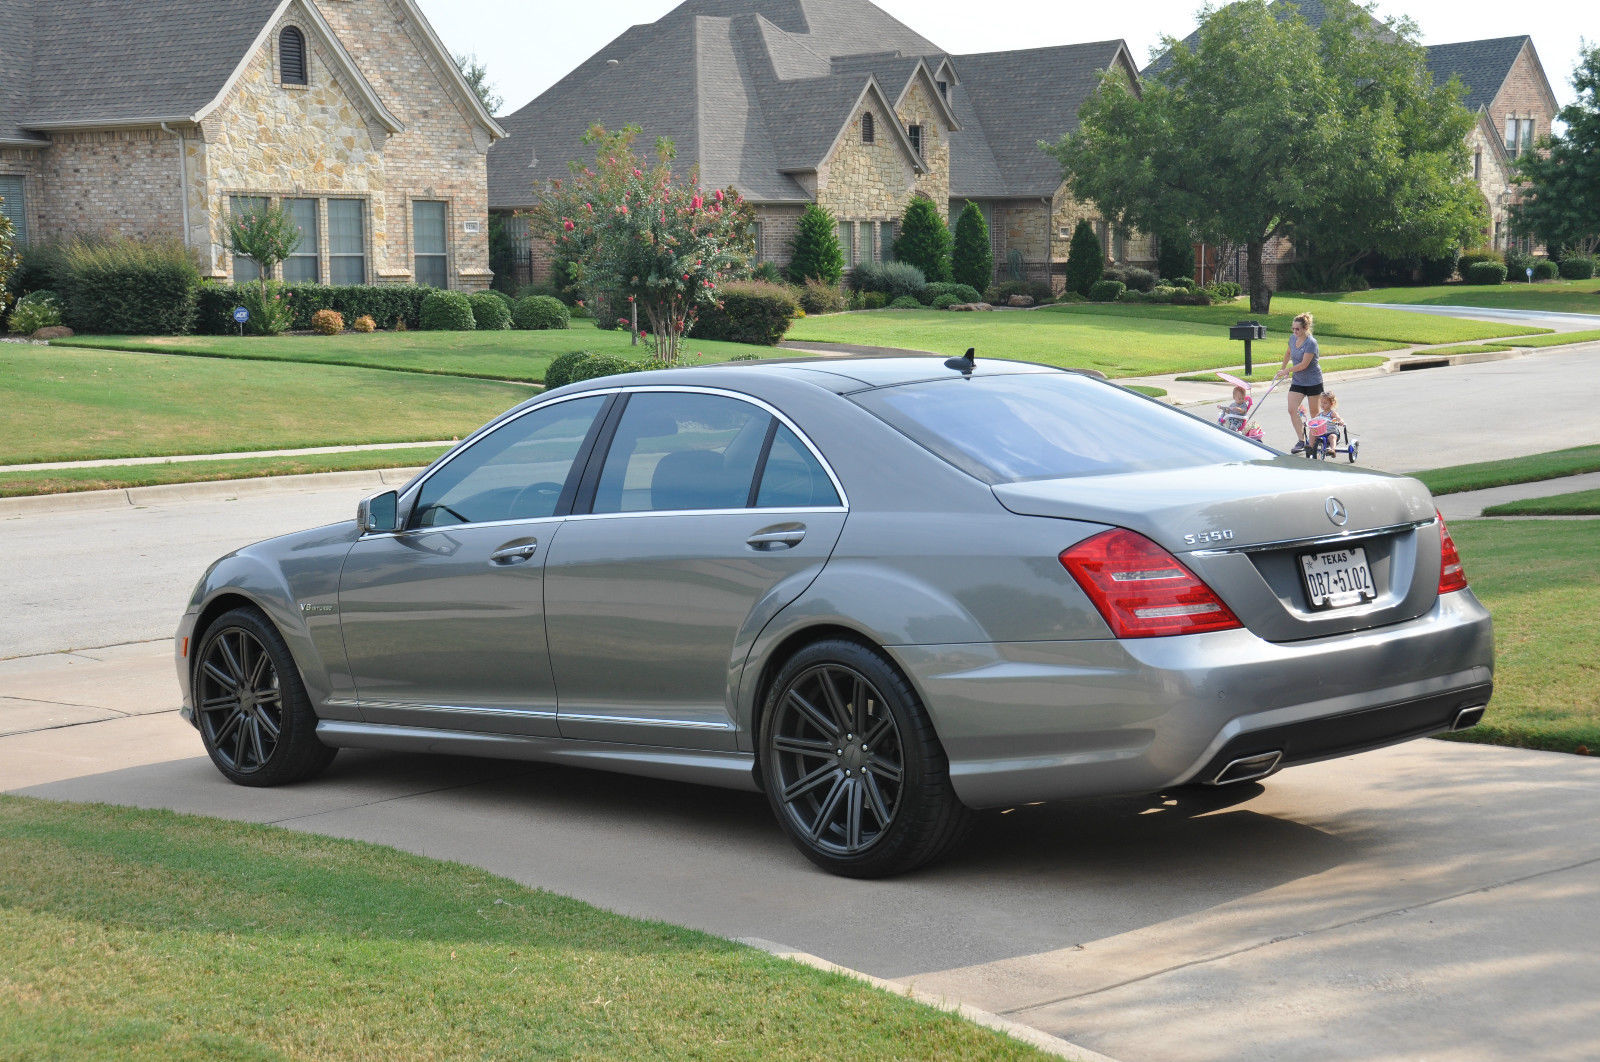 Mercedes benz w221 s550 on 20 vossen wheels benztuning for Mercedes benz wheels rims